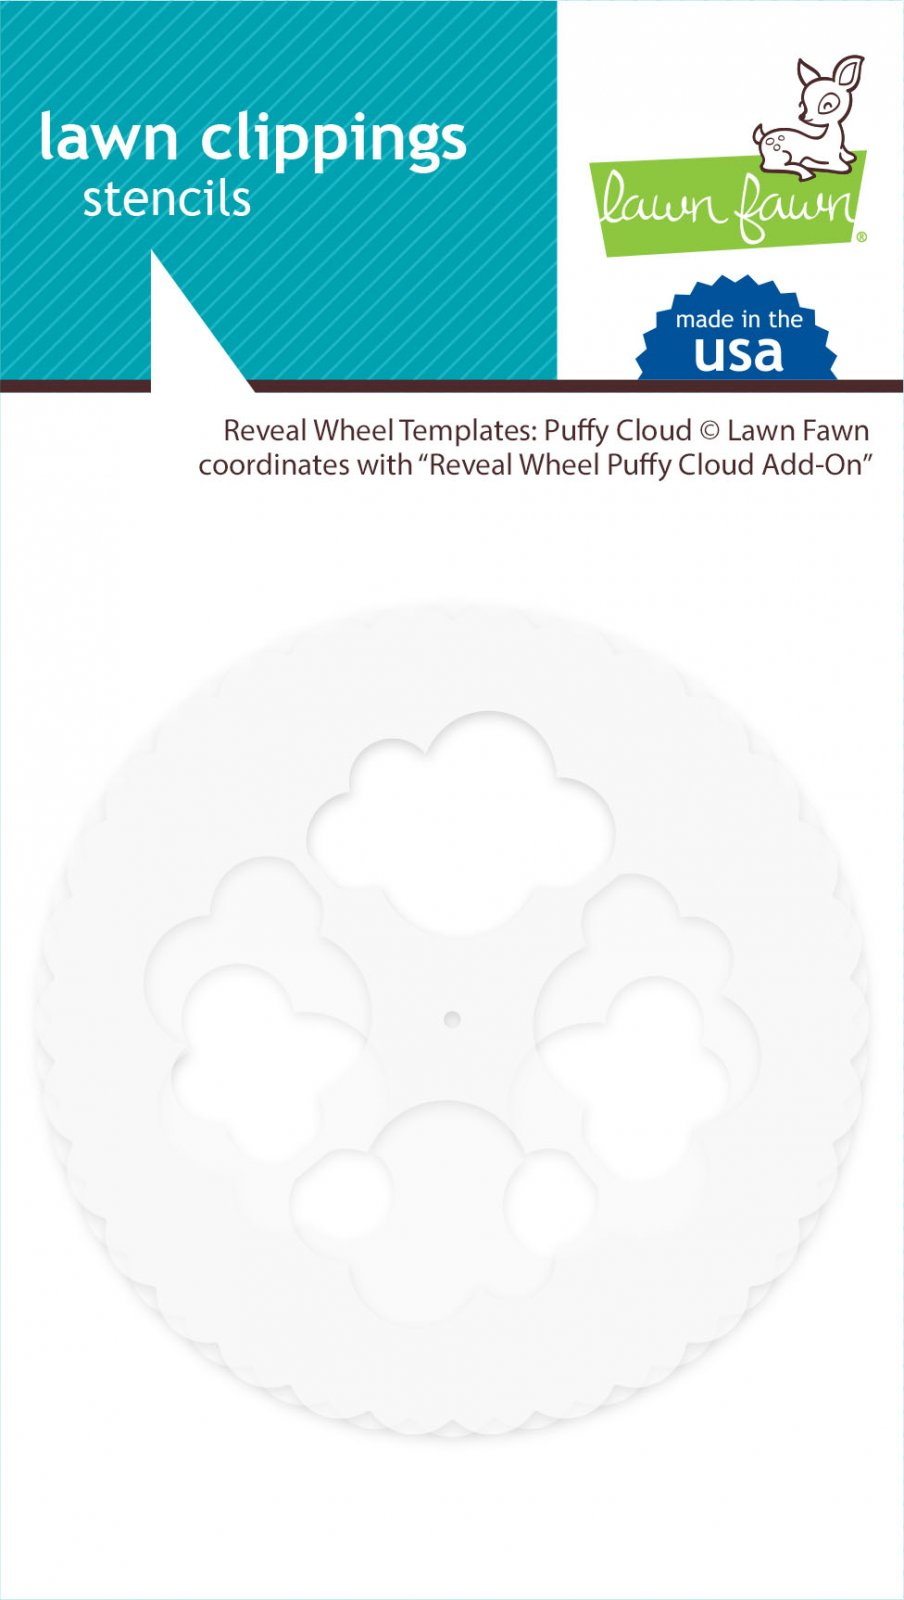 Lawn Fawn Reveal Wheel Template - Puffy Cloud